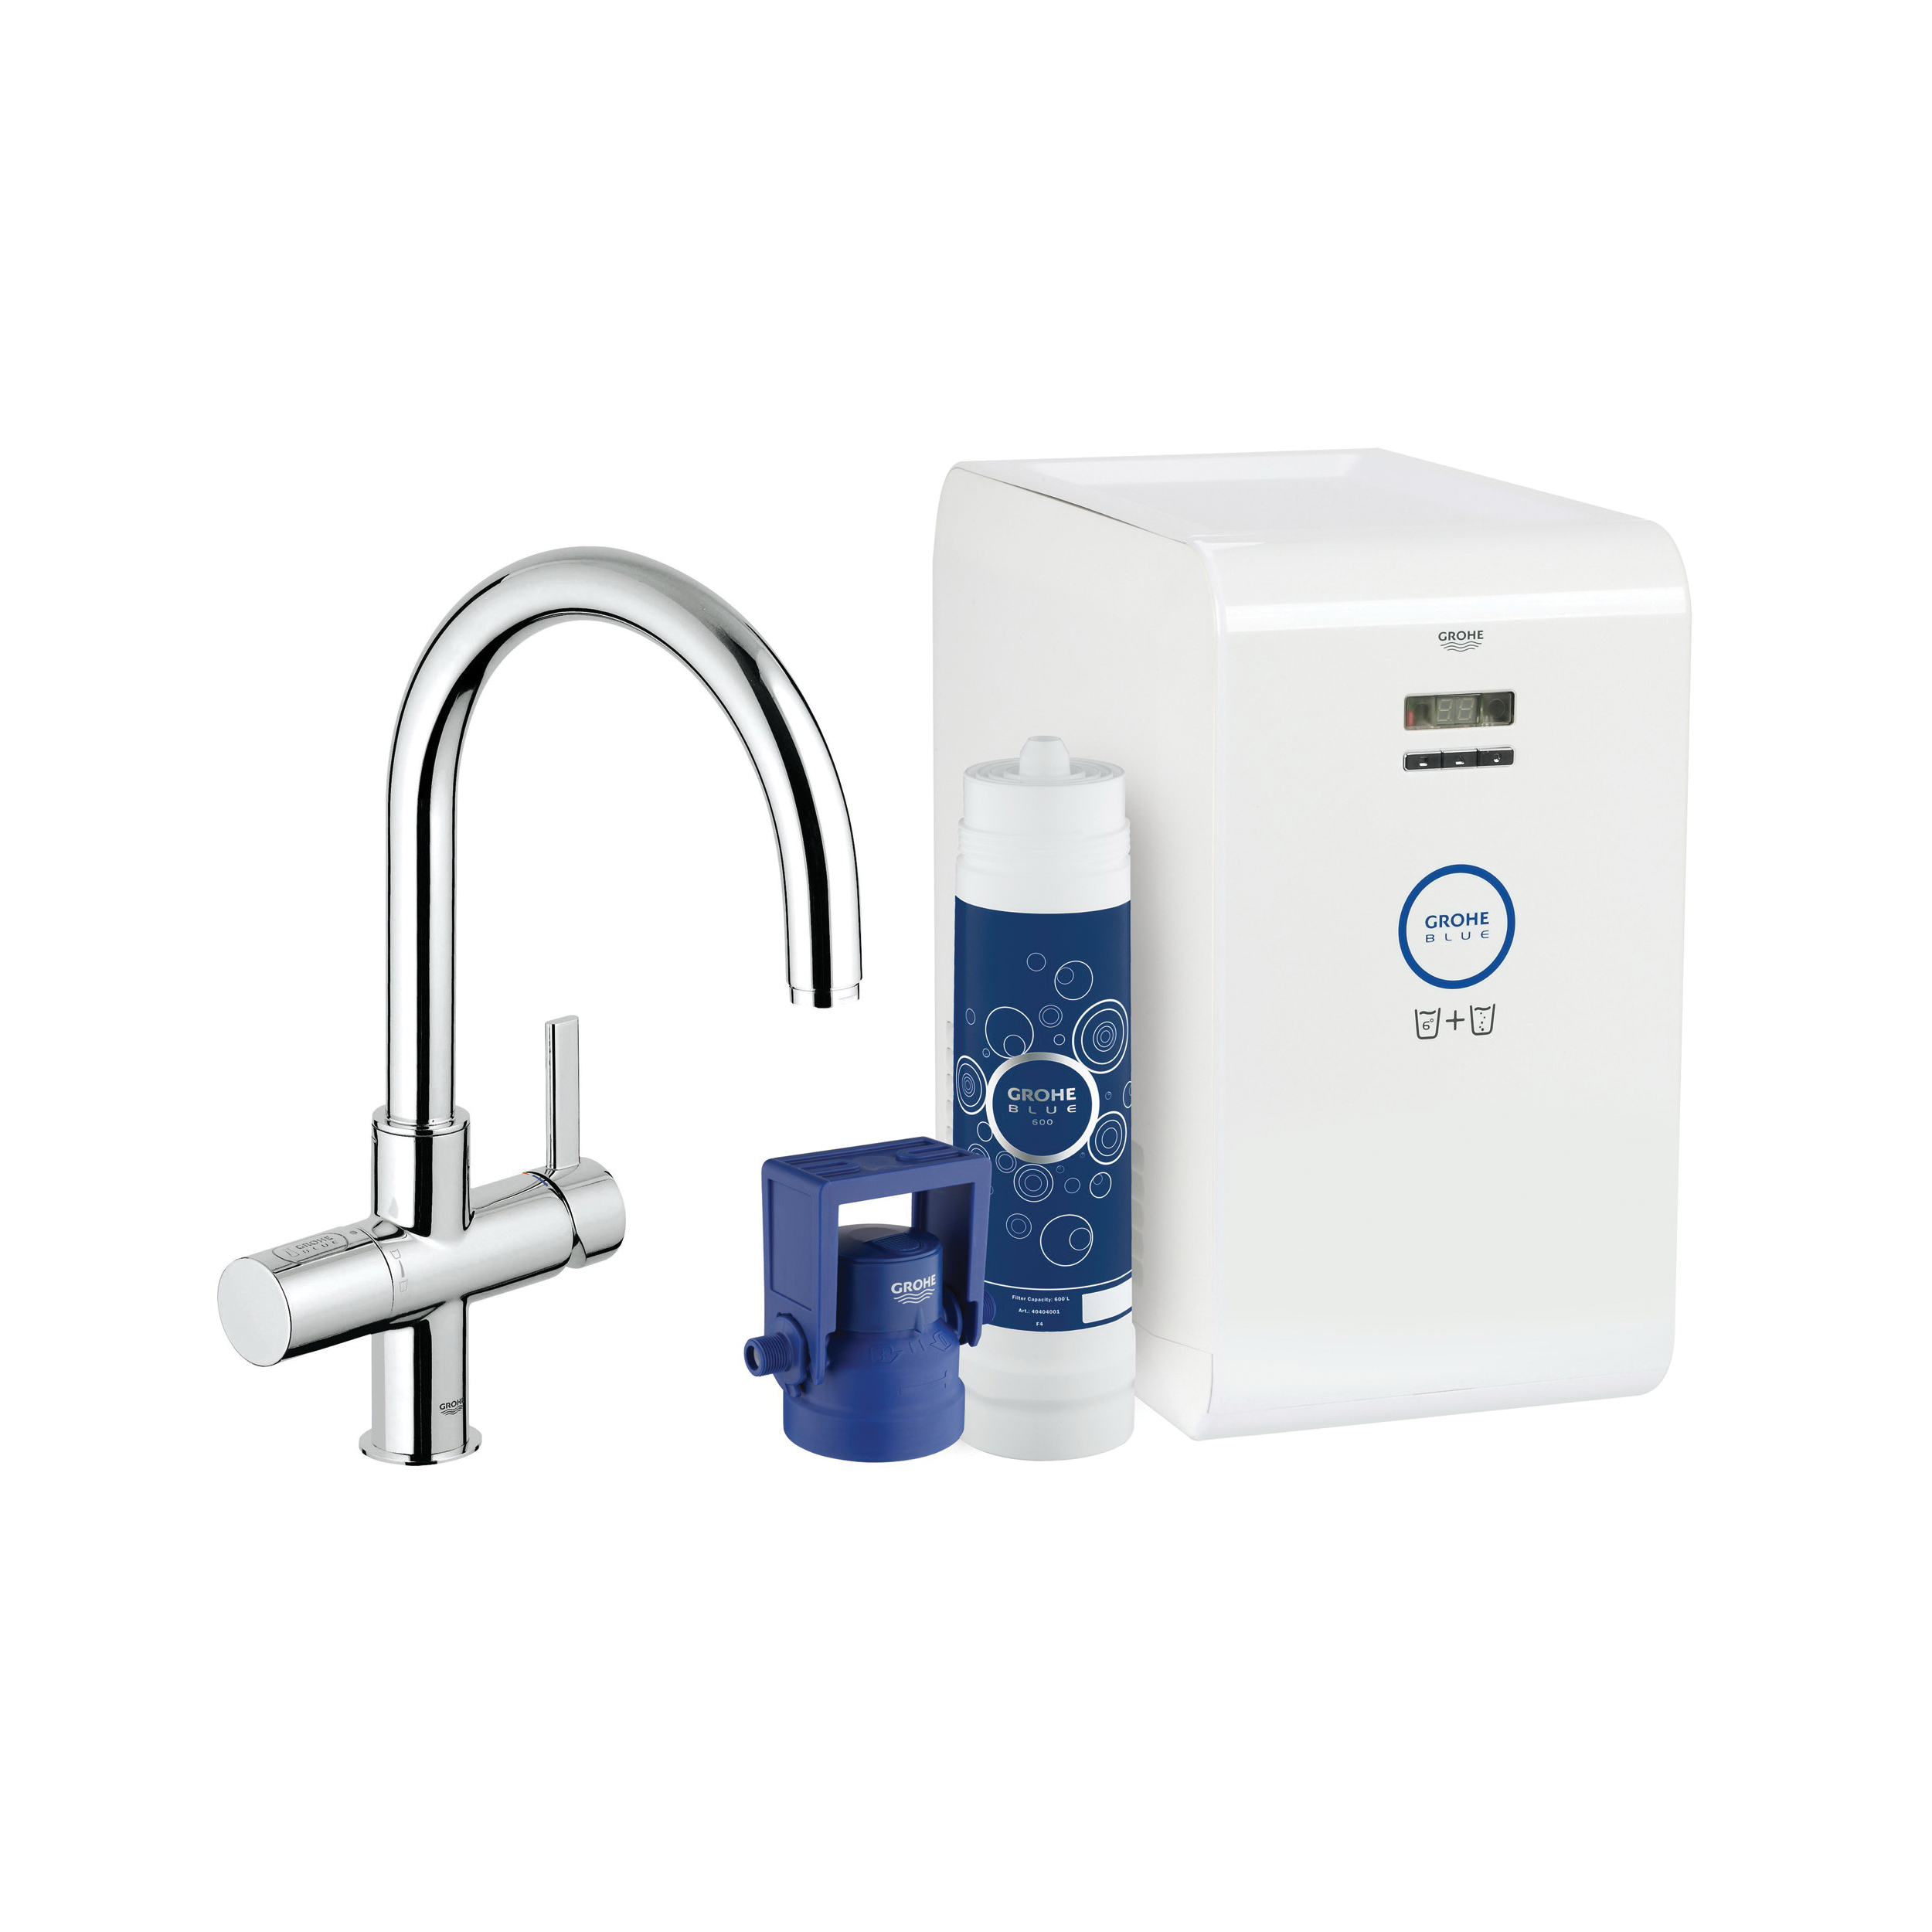 GROHE 31251001 GROHE Blue Sparkling Faucet and Water System, 1.75 gpm, 1 Handle, StarLight® Chrome, Import, Residential